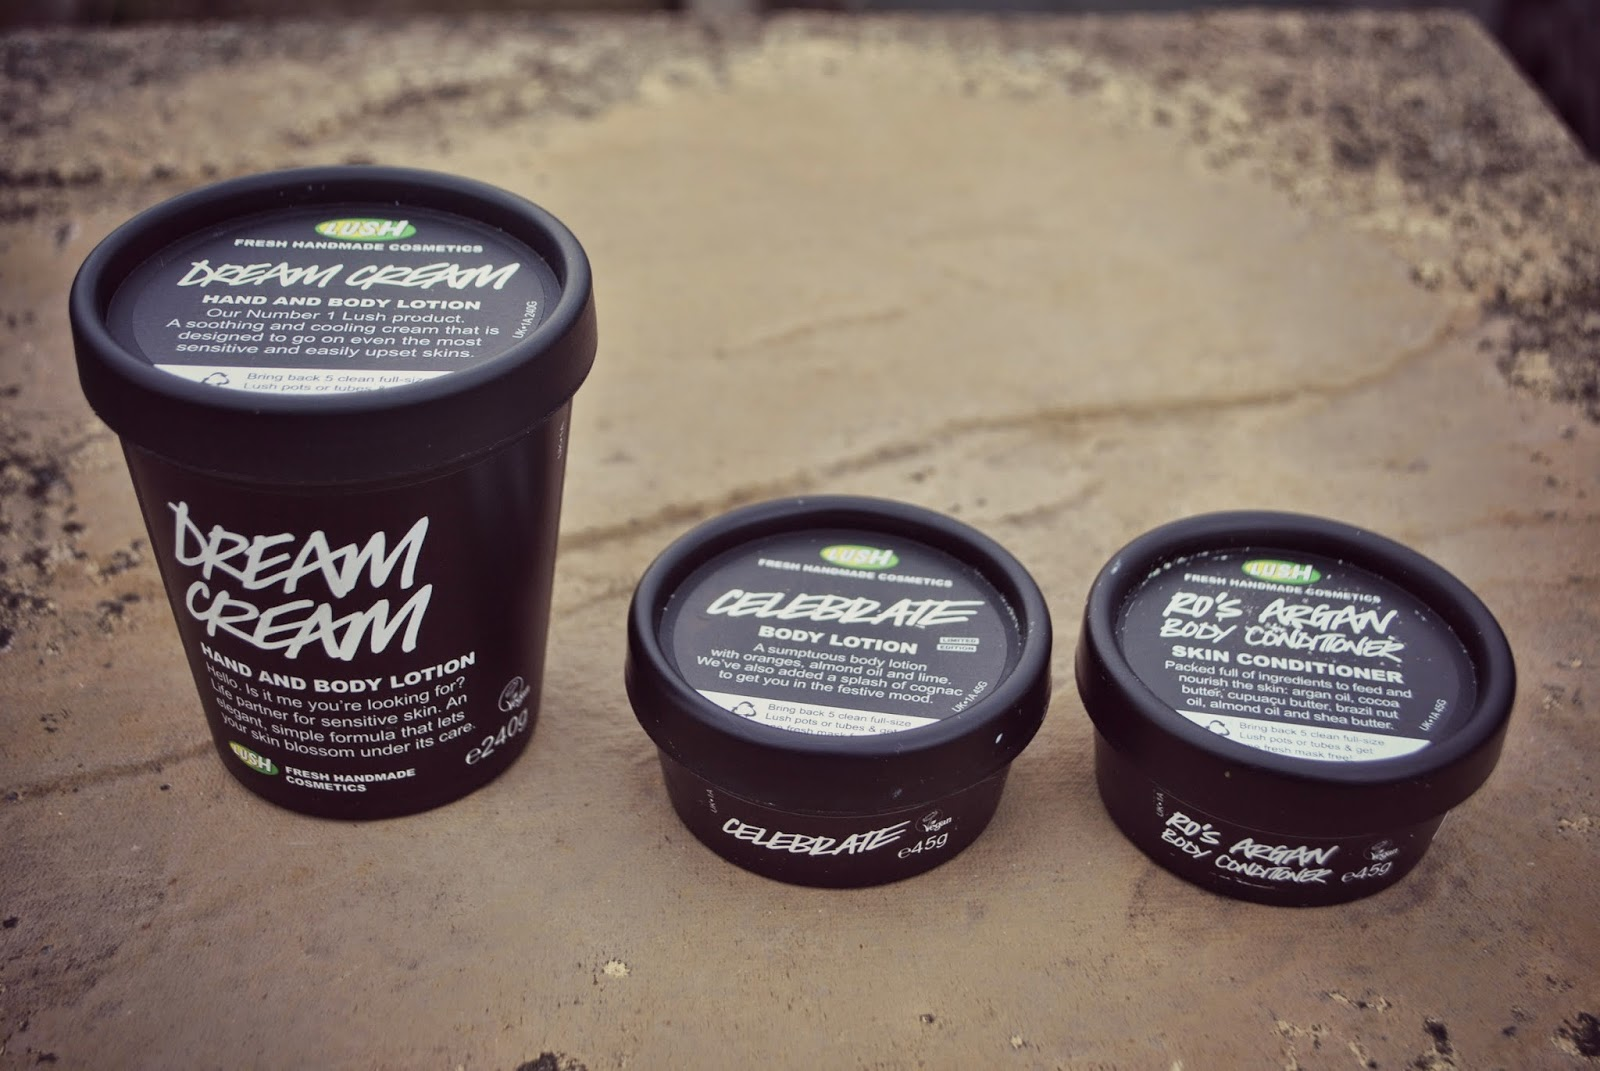 Lush Dream Cream Celebrate Ro's Argan Body Conditioner